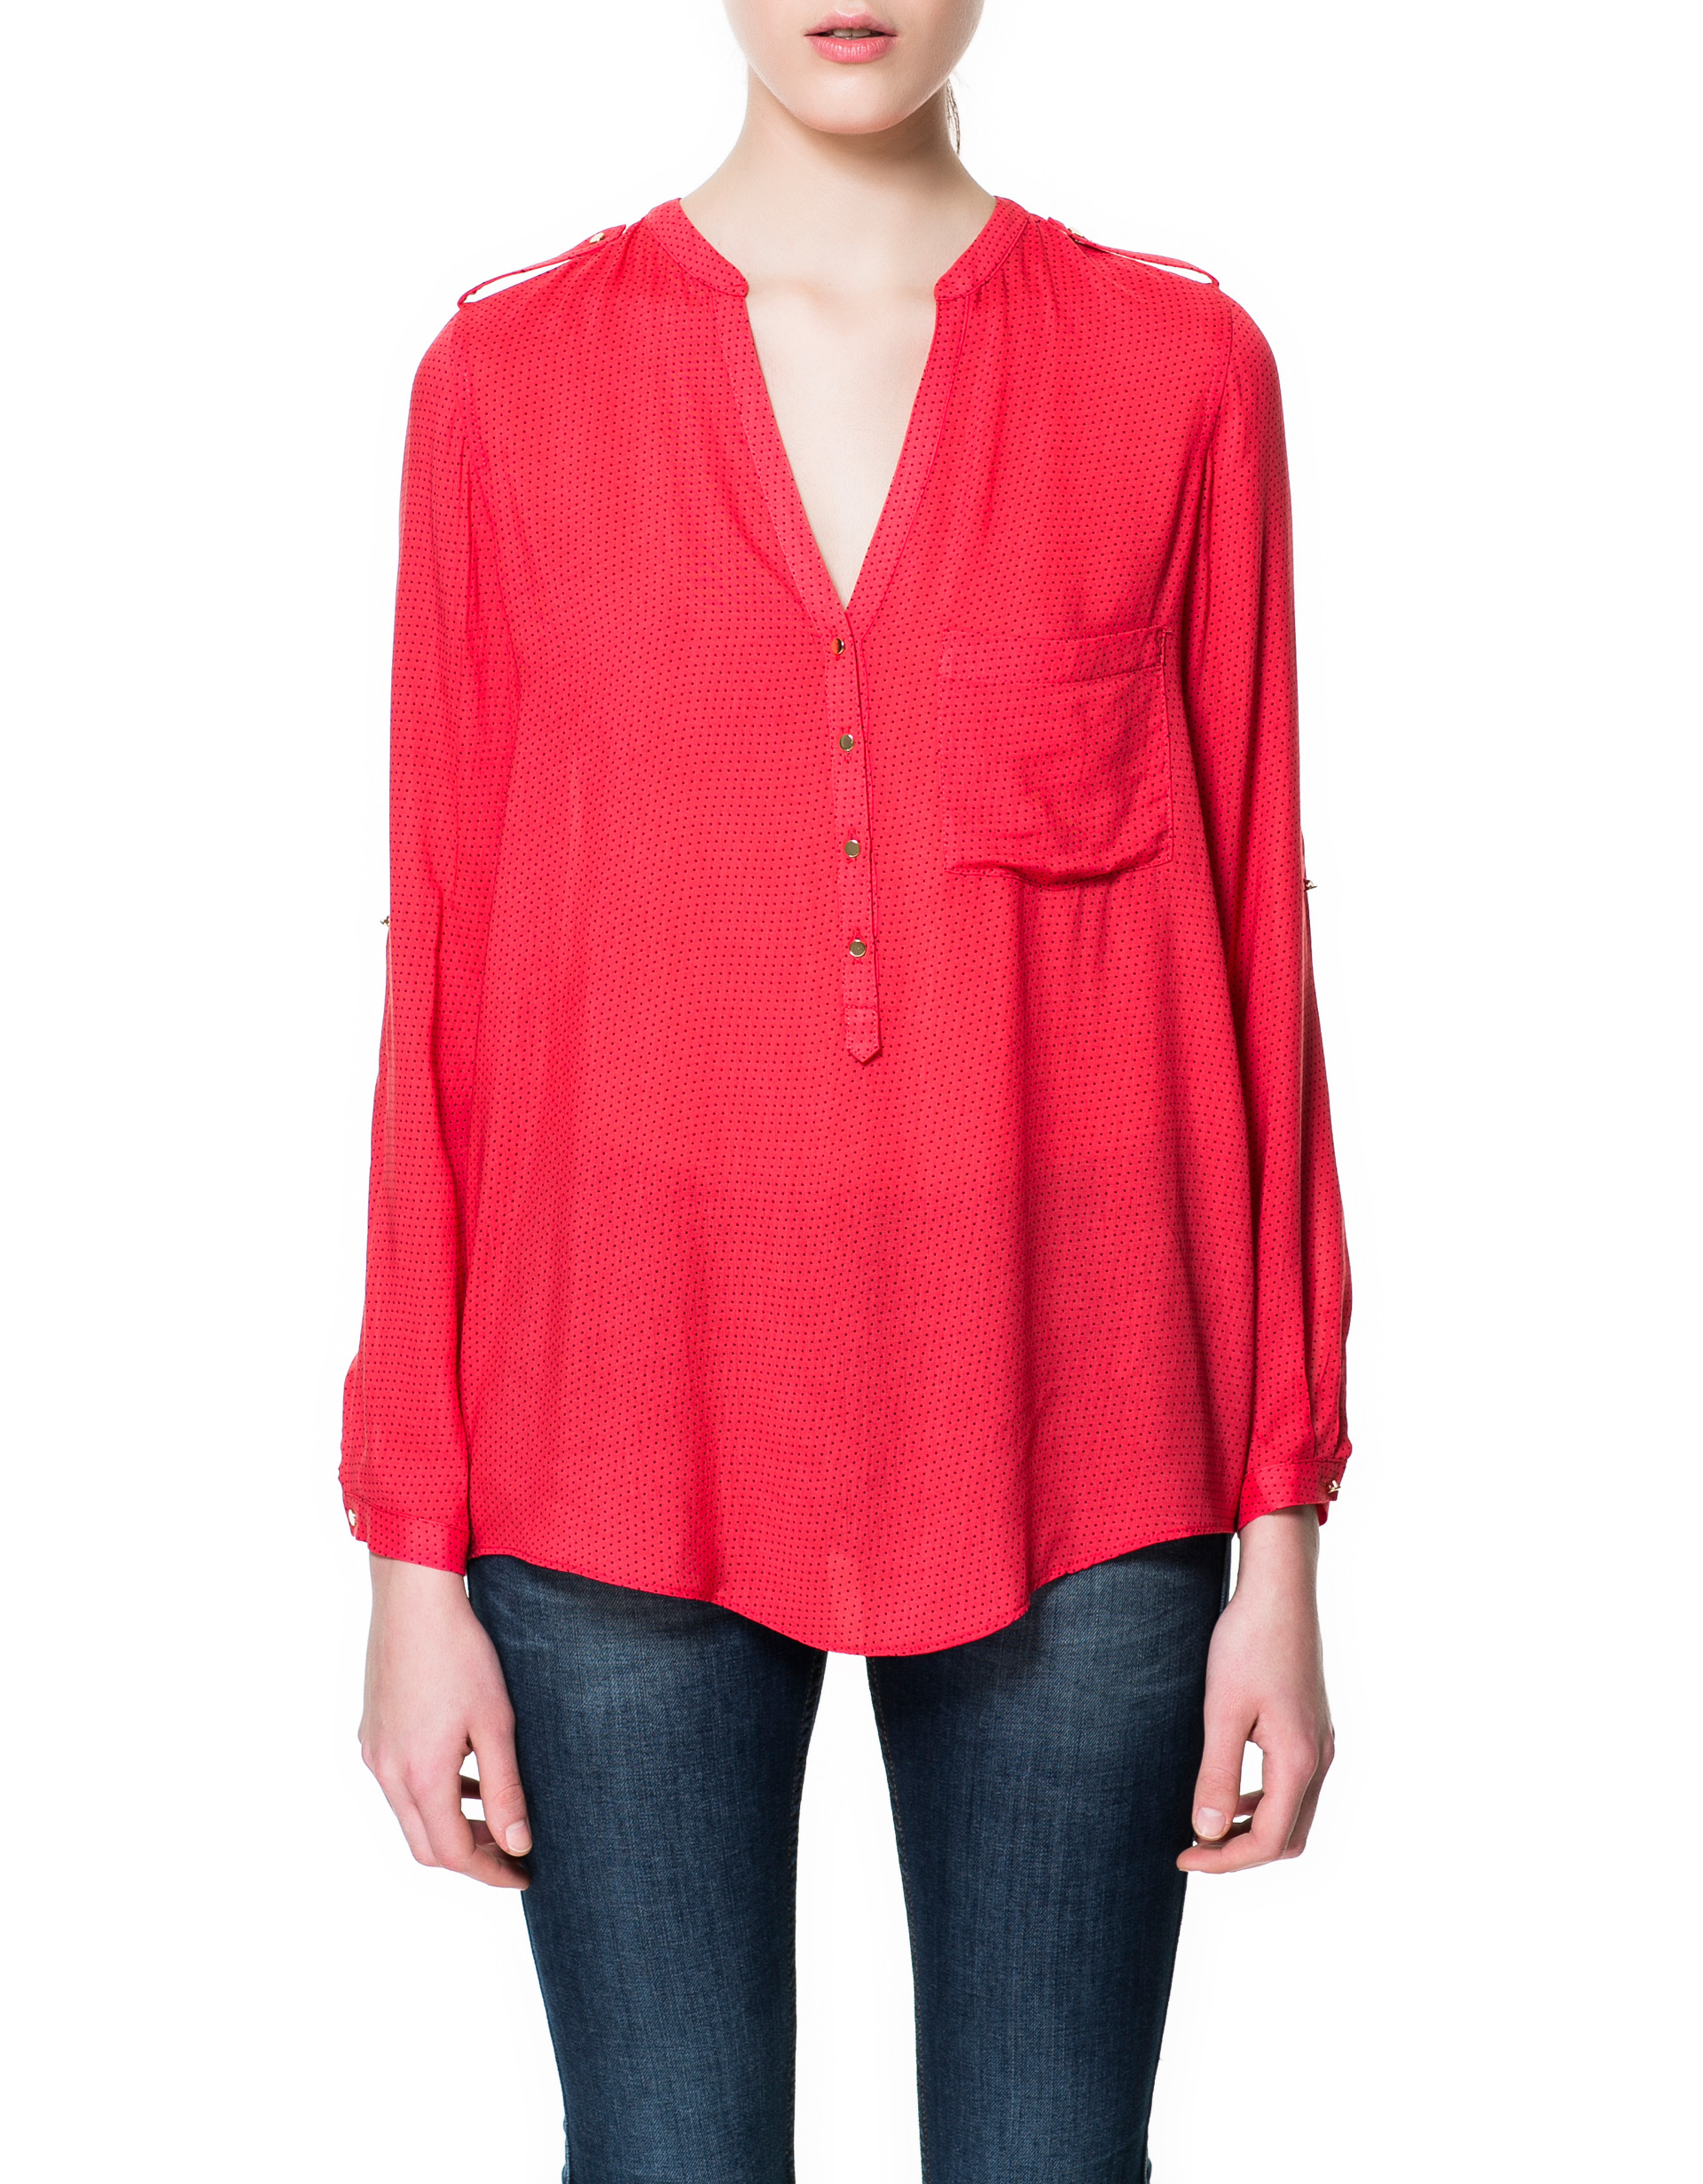 Zara Red Blouse 79